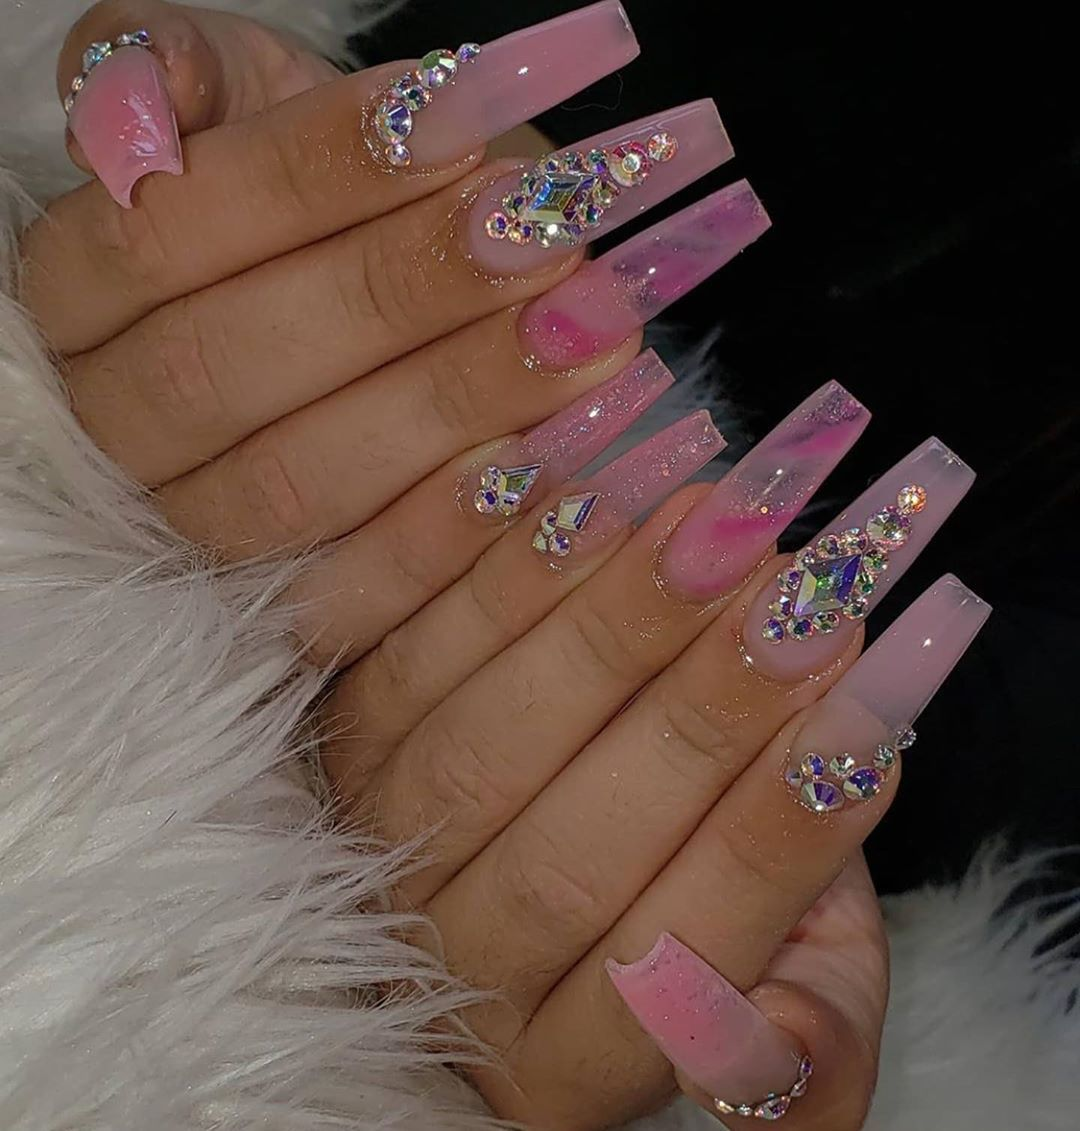 Fashion Baddie Nails Follow The Mainstream Of This Season The First Hand Fashion News For Females In 2020 Acrylic Nails Coffin Pink Coffin Nails Designs Nails